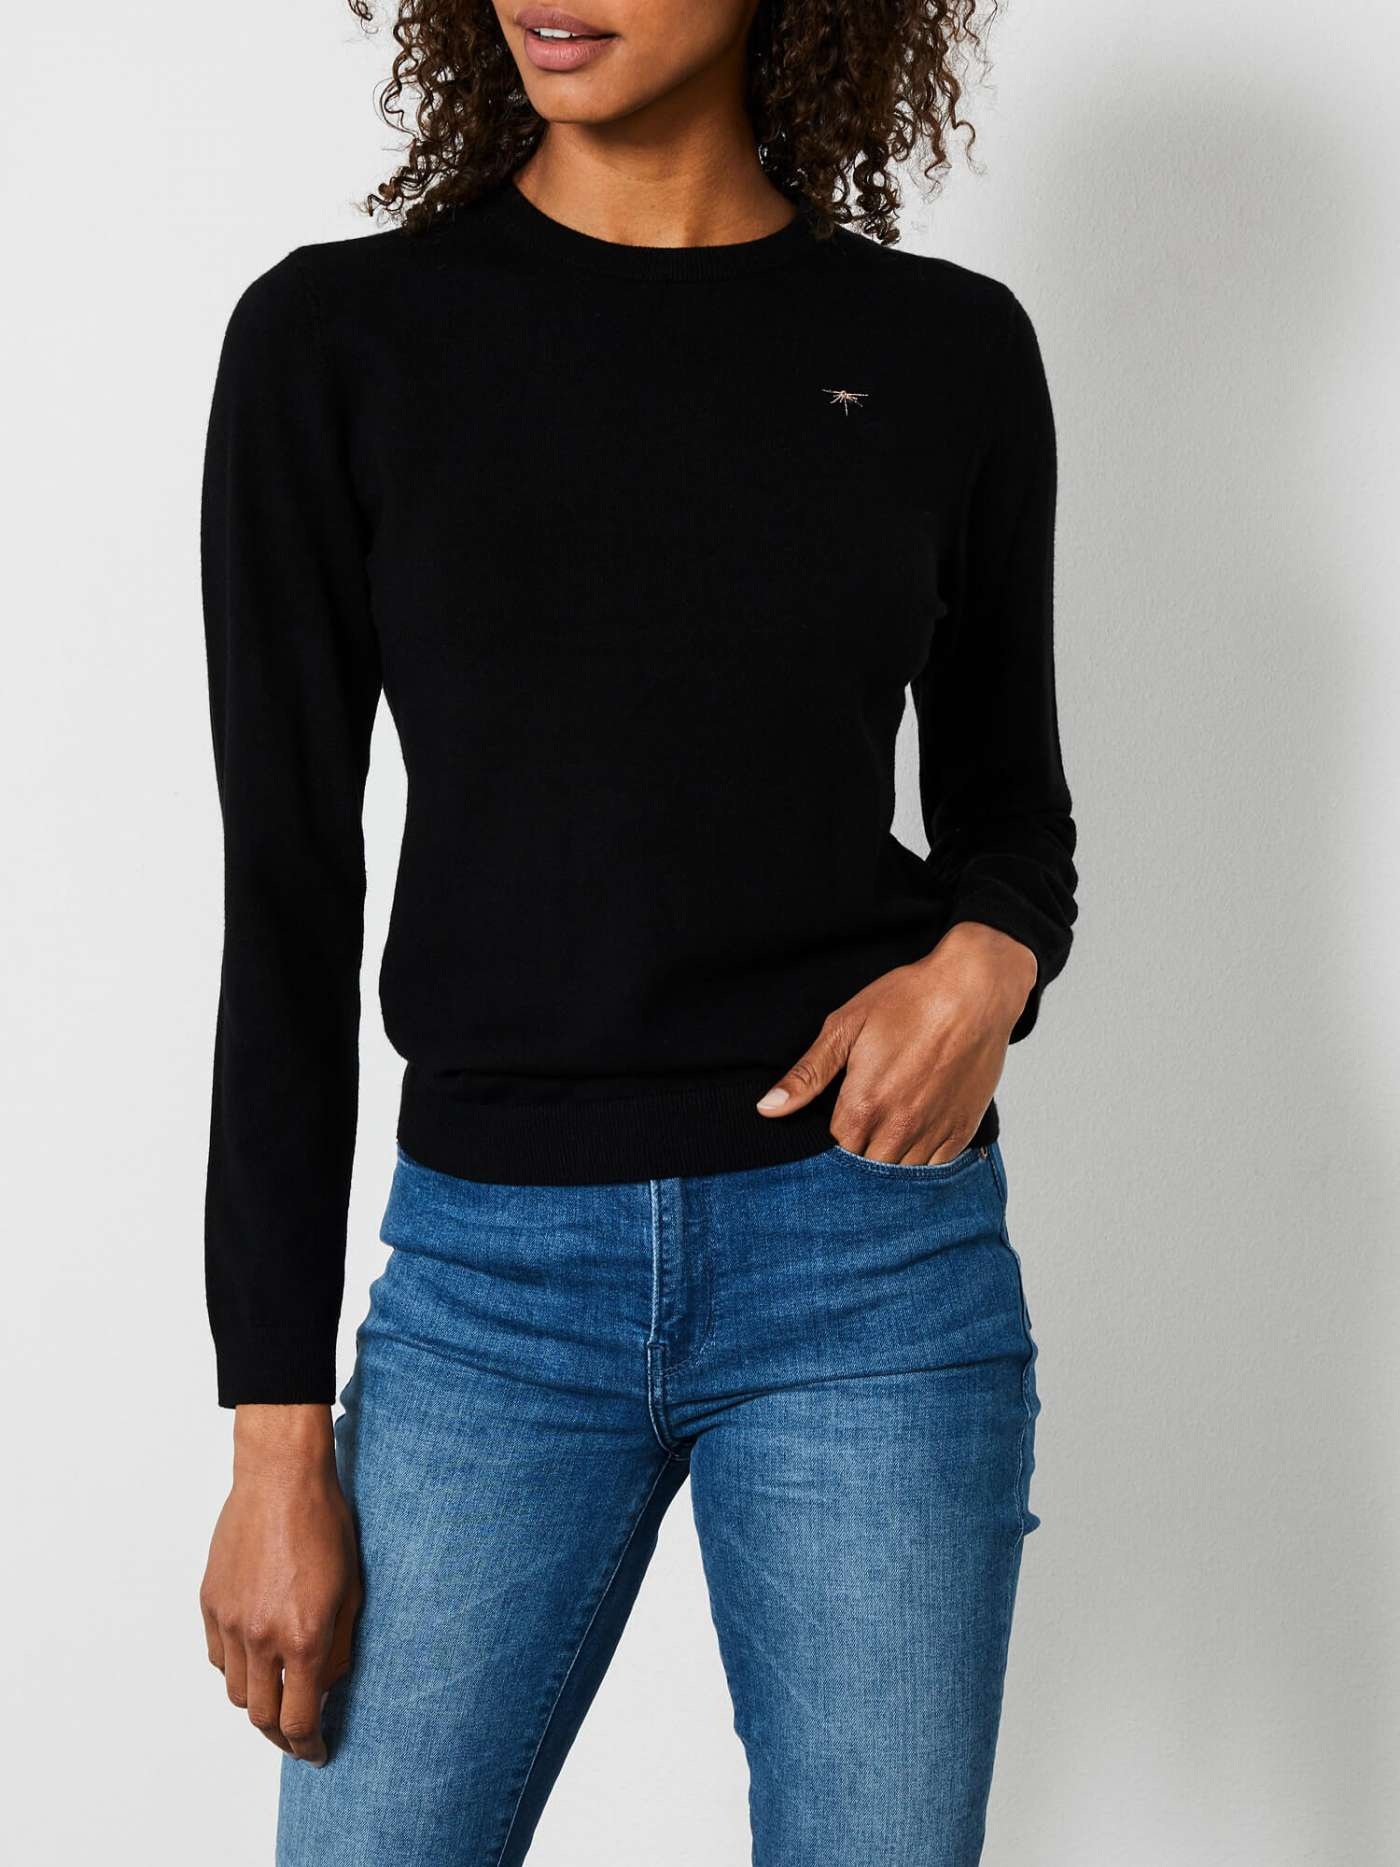 Comfy-knit pullover